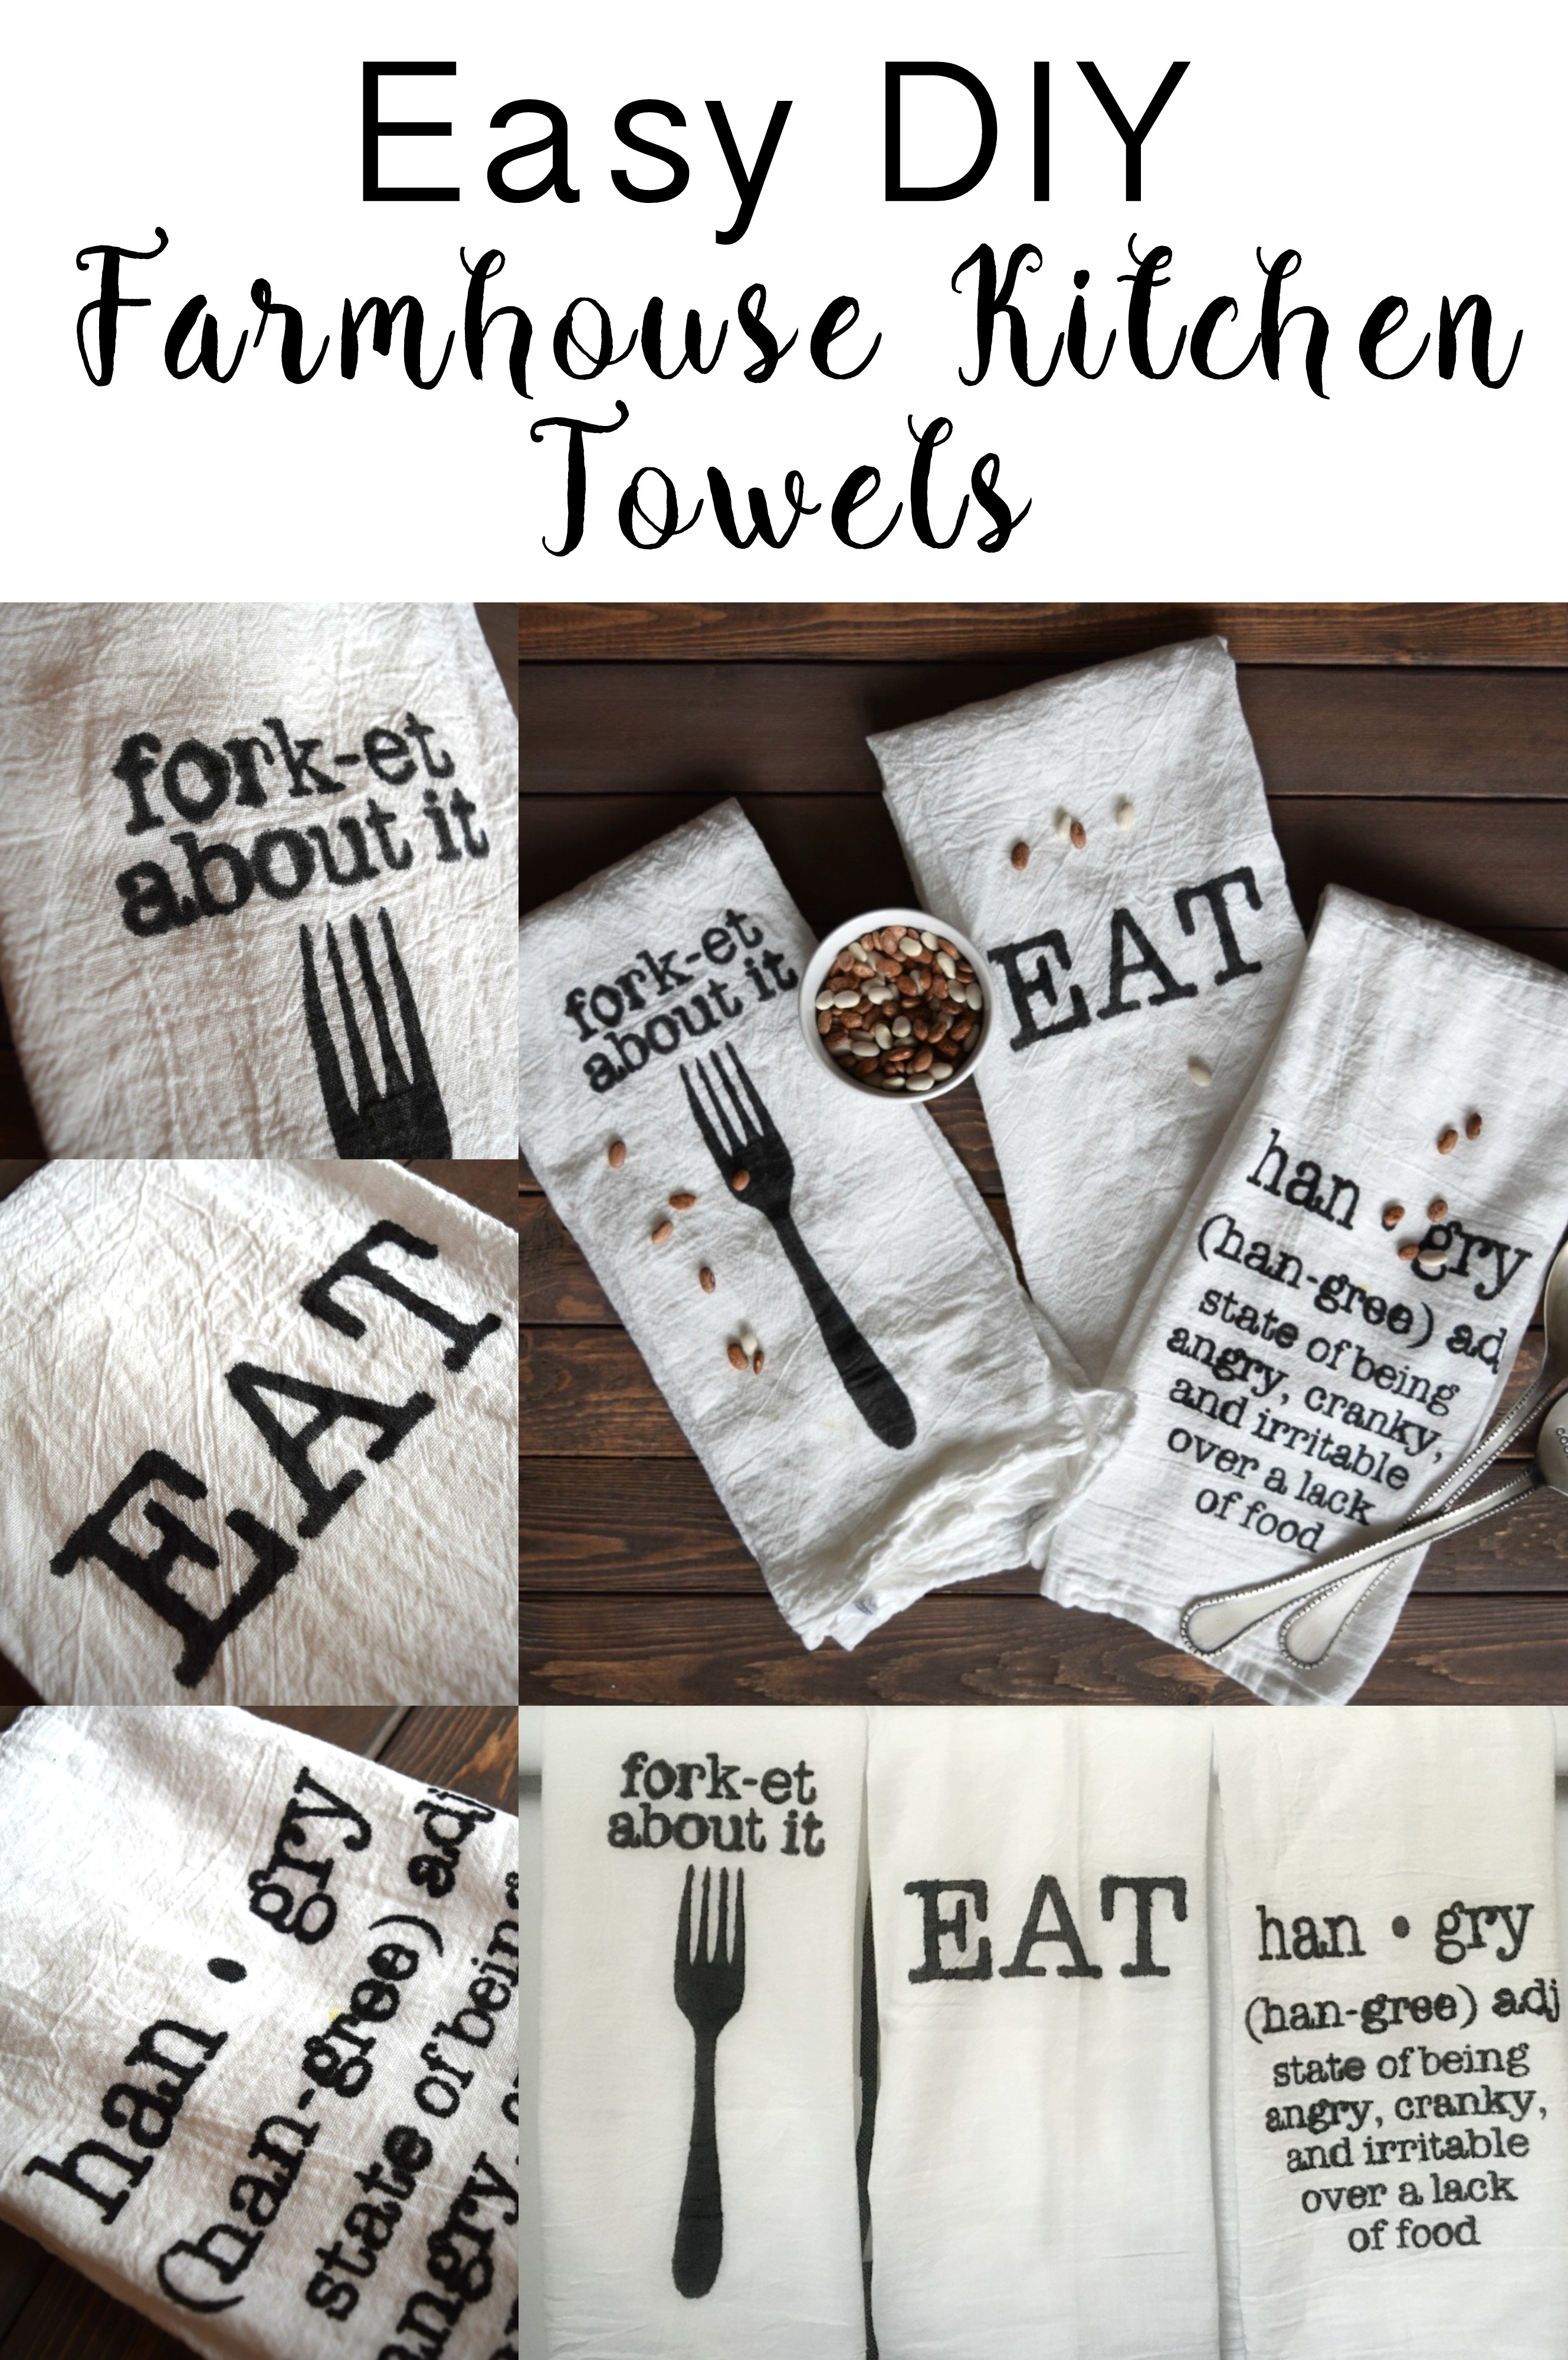 Easy way to make your own kitchen towels. Add some humor to your kitchen and some Farmhouse flair. Also makes a great gift.